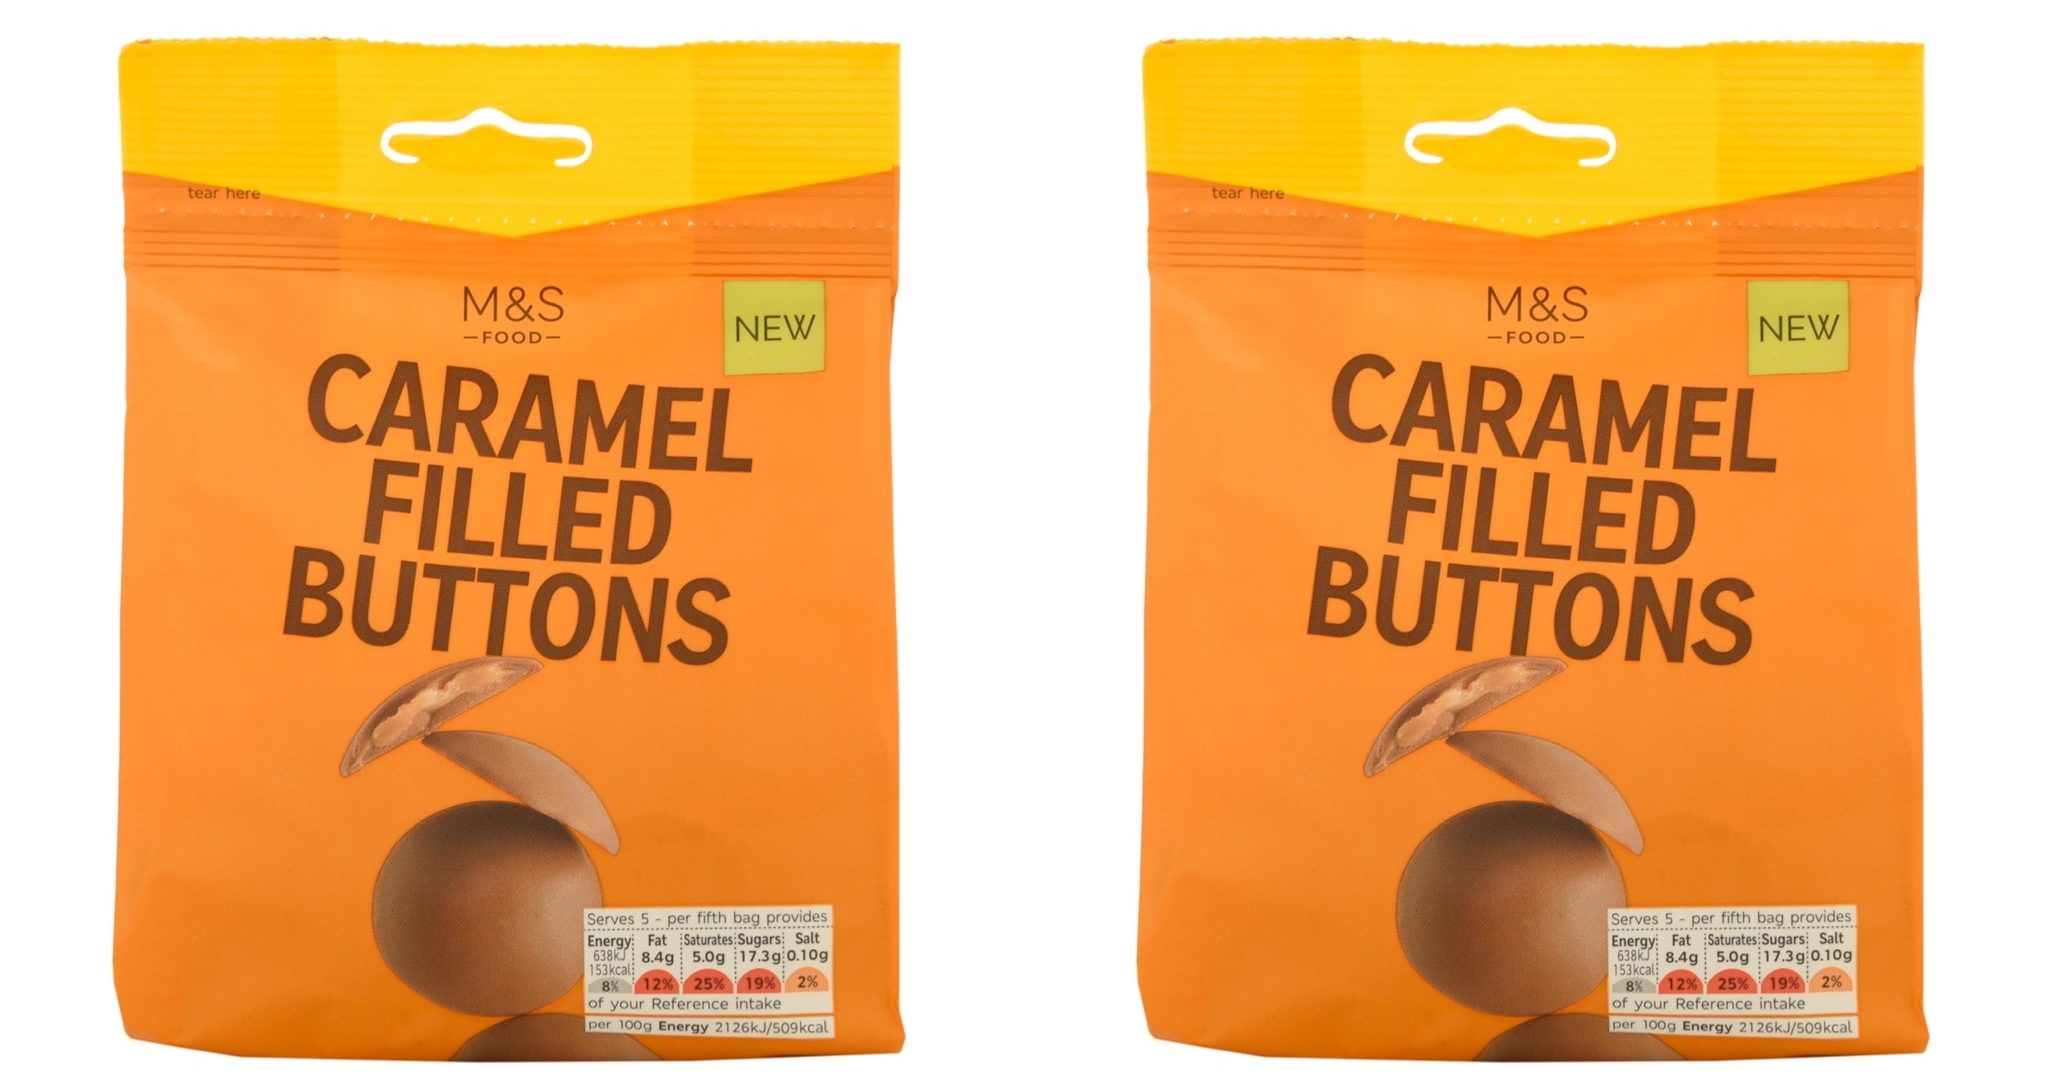 M&S launches 'moreish' new 'chunky' chocolate buttons filled with salted caramel